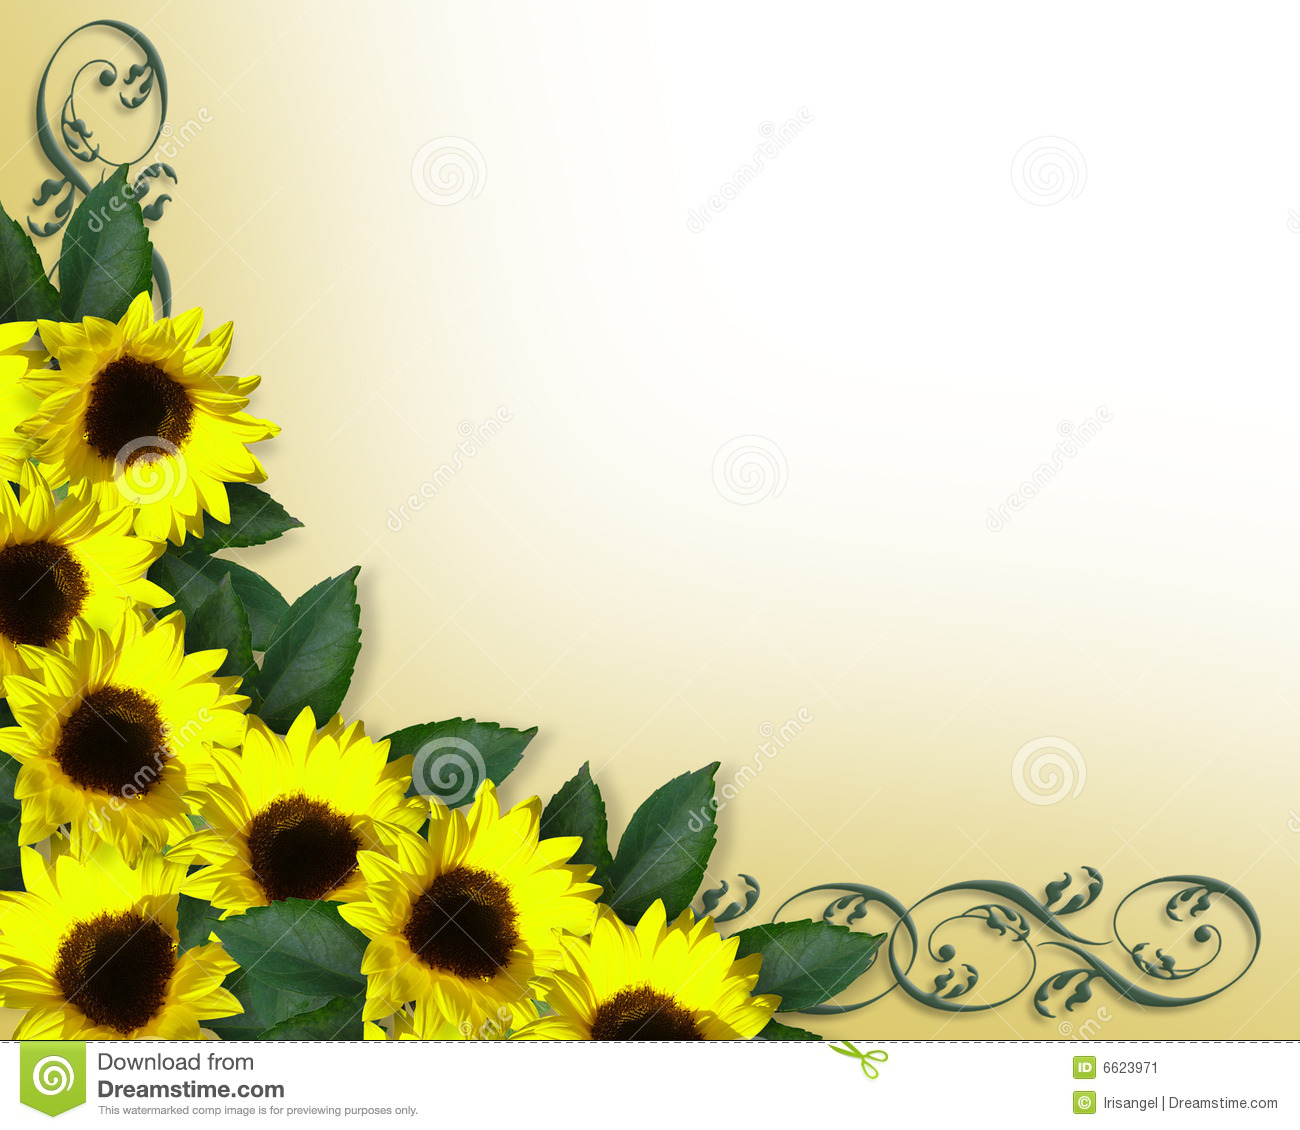 Sunflowers Border Yellow Spring Stock Image   Image  6623971